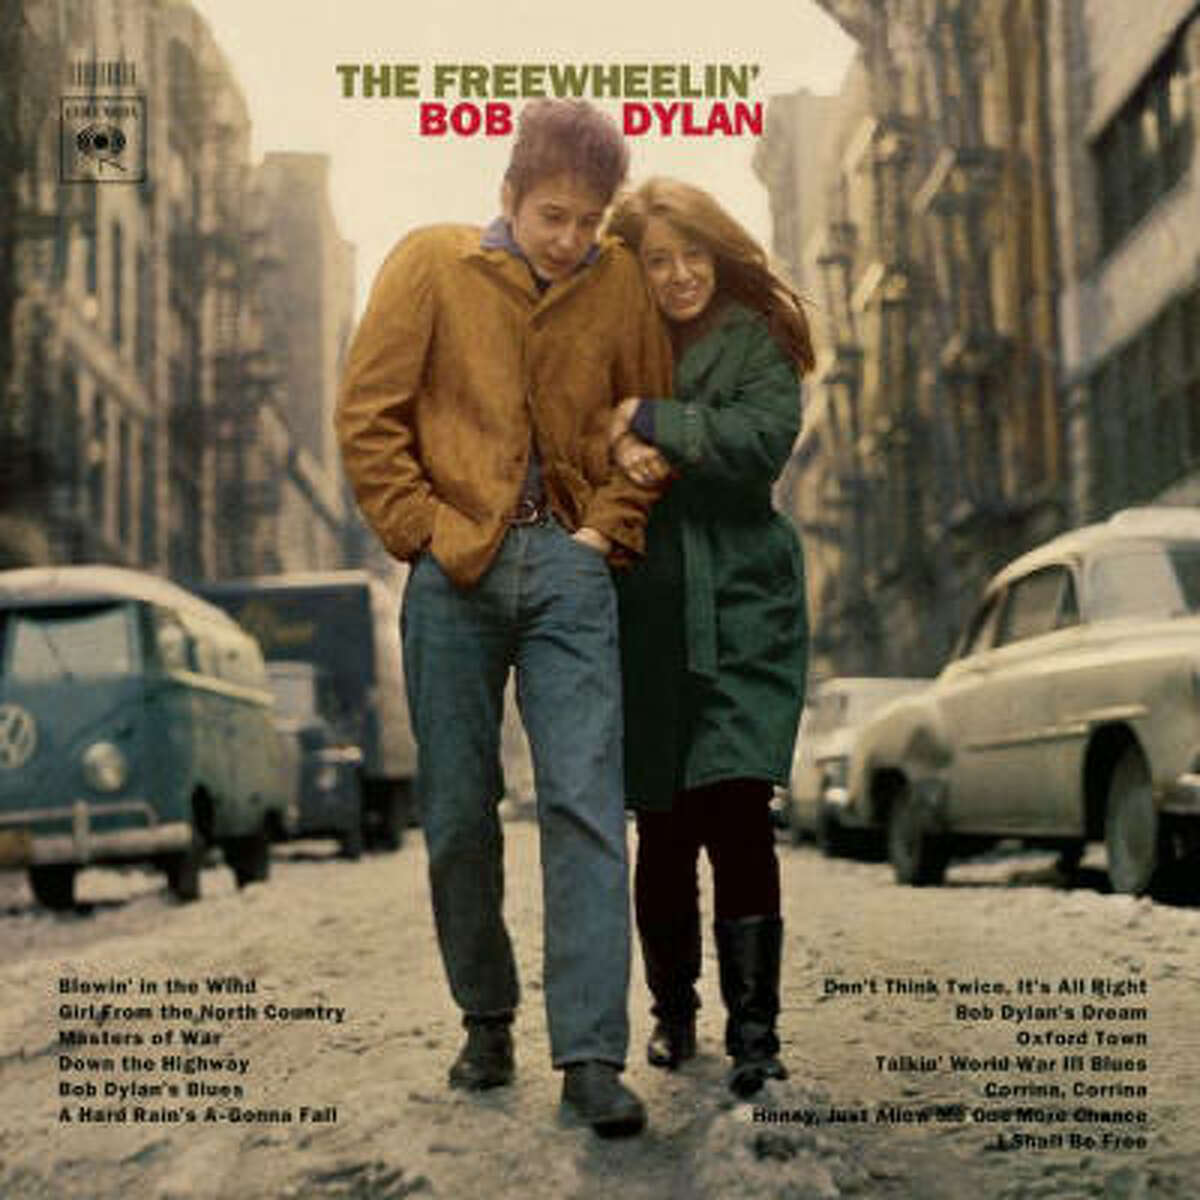 The Freewheelin' Bob Dylan (1963): Pictured smiling and locking arms with then girlfriend Suze Rotolo, scampering around New York's Greenwich Village in February. Paul Till, who would provide the cover shot for Blood on the Tracks years later, calls it